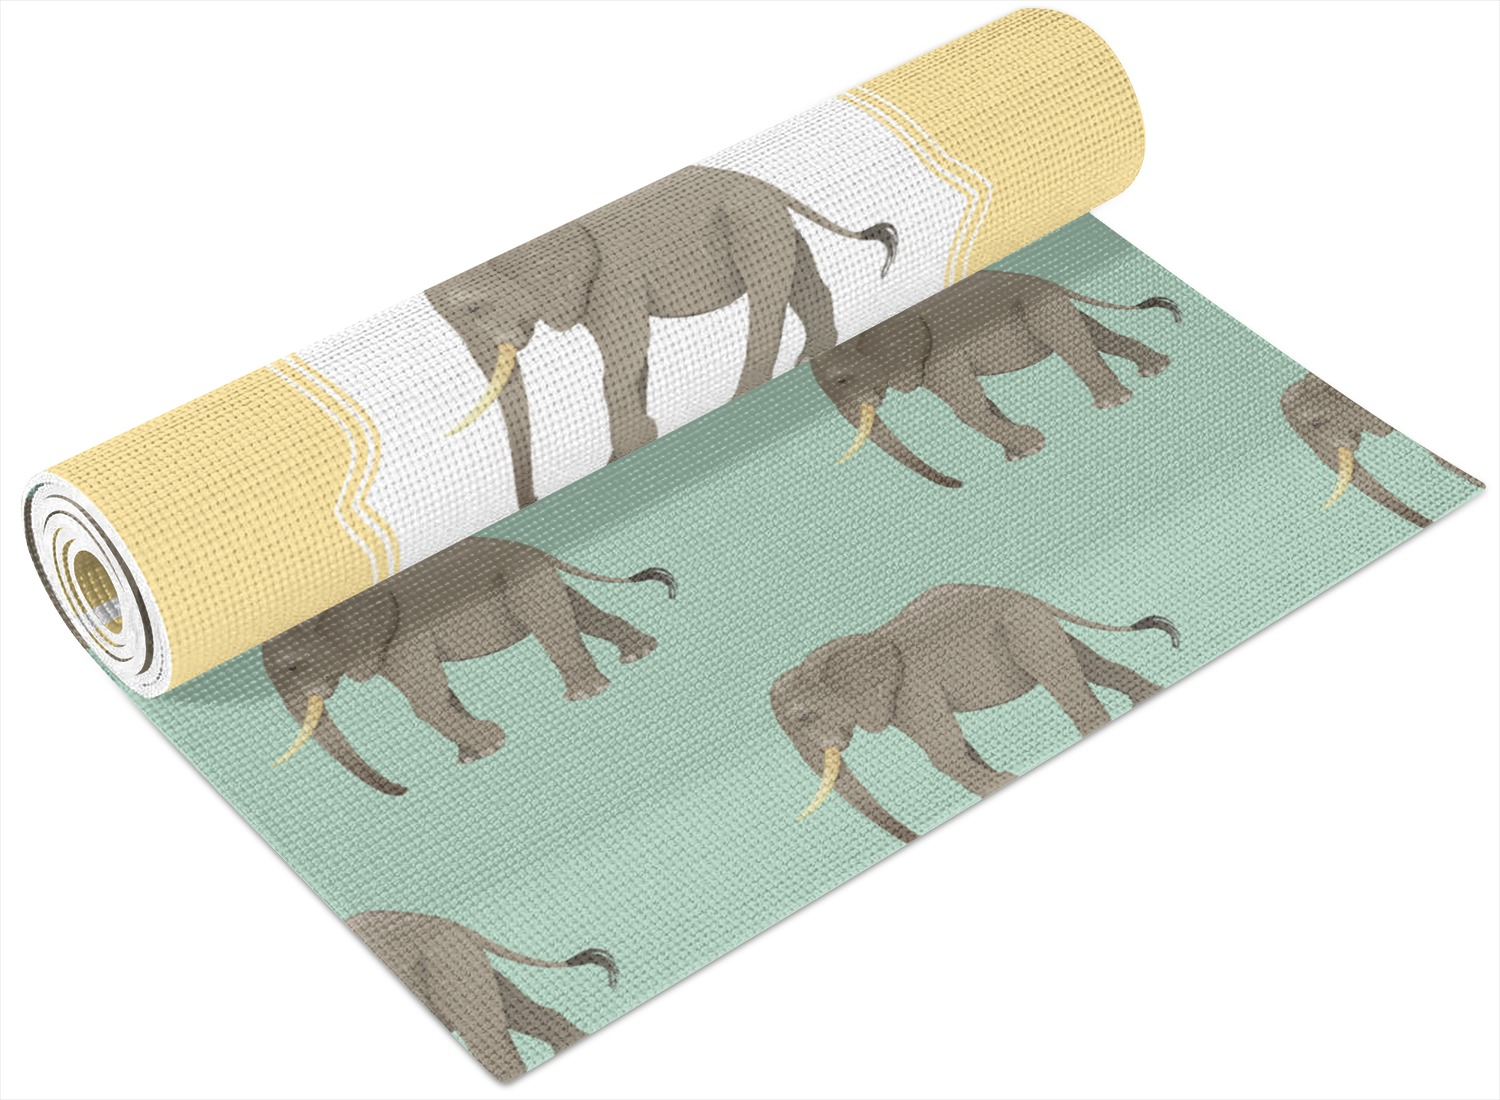 Elephant Yoga Mat Printed Front And Back Personalized